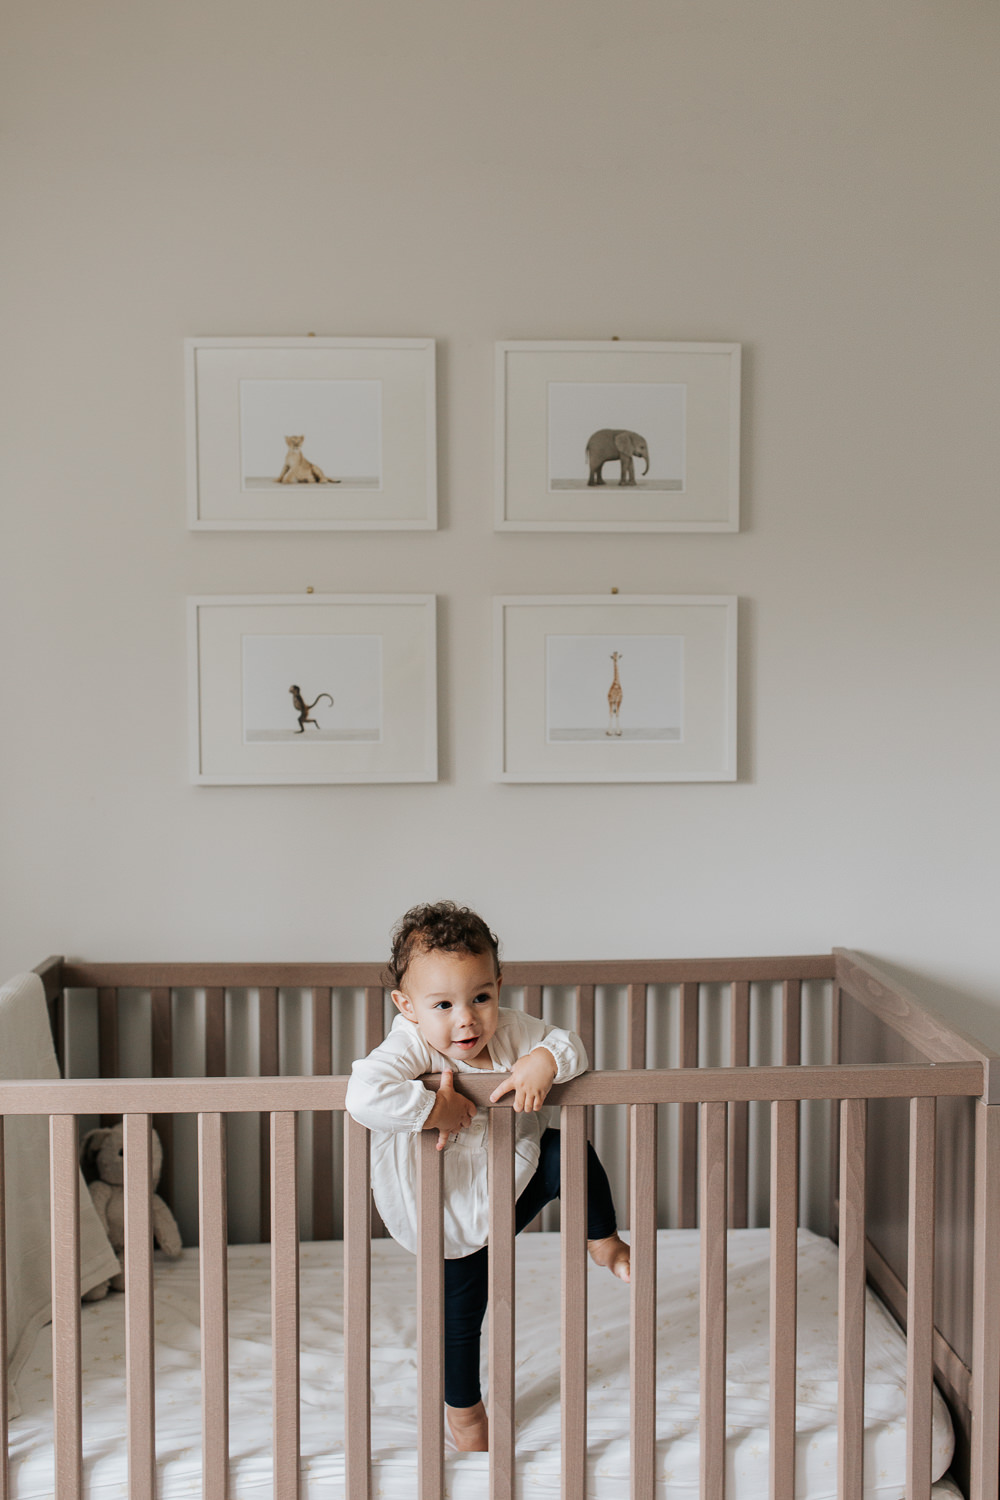 2 year old girl with dark curly hair and brown eyes in cream top and dark pants trying to climb out of crib in neutral nursery with animal prints on wall -GTA Lifestyle Photos